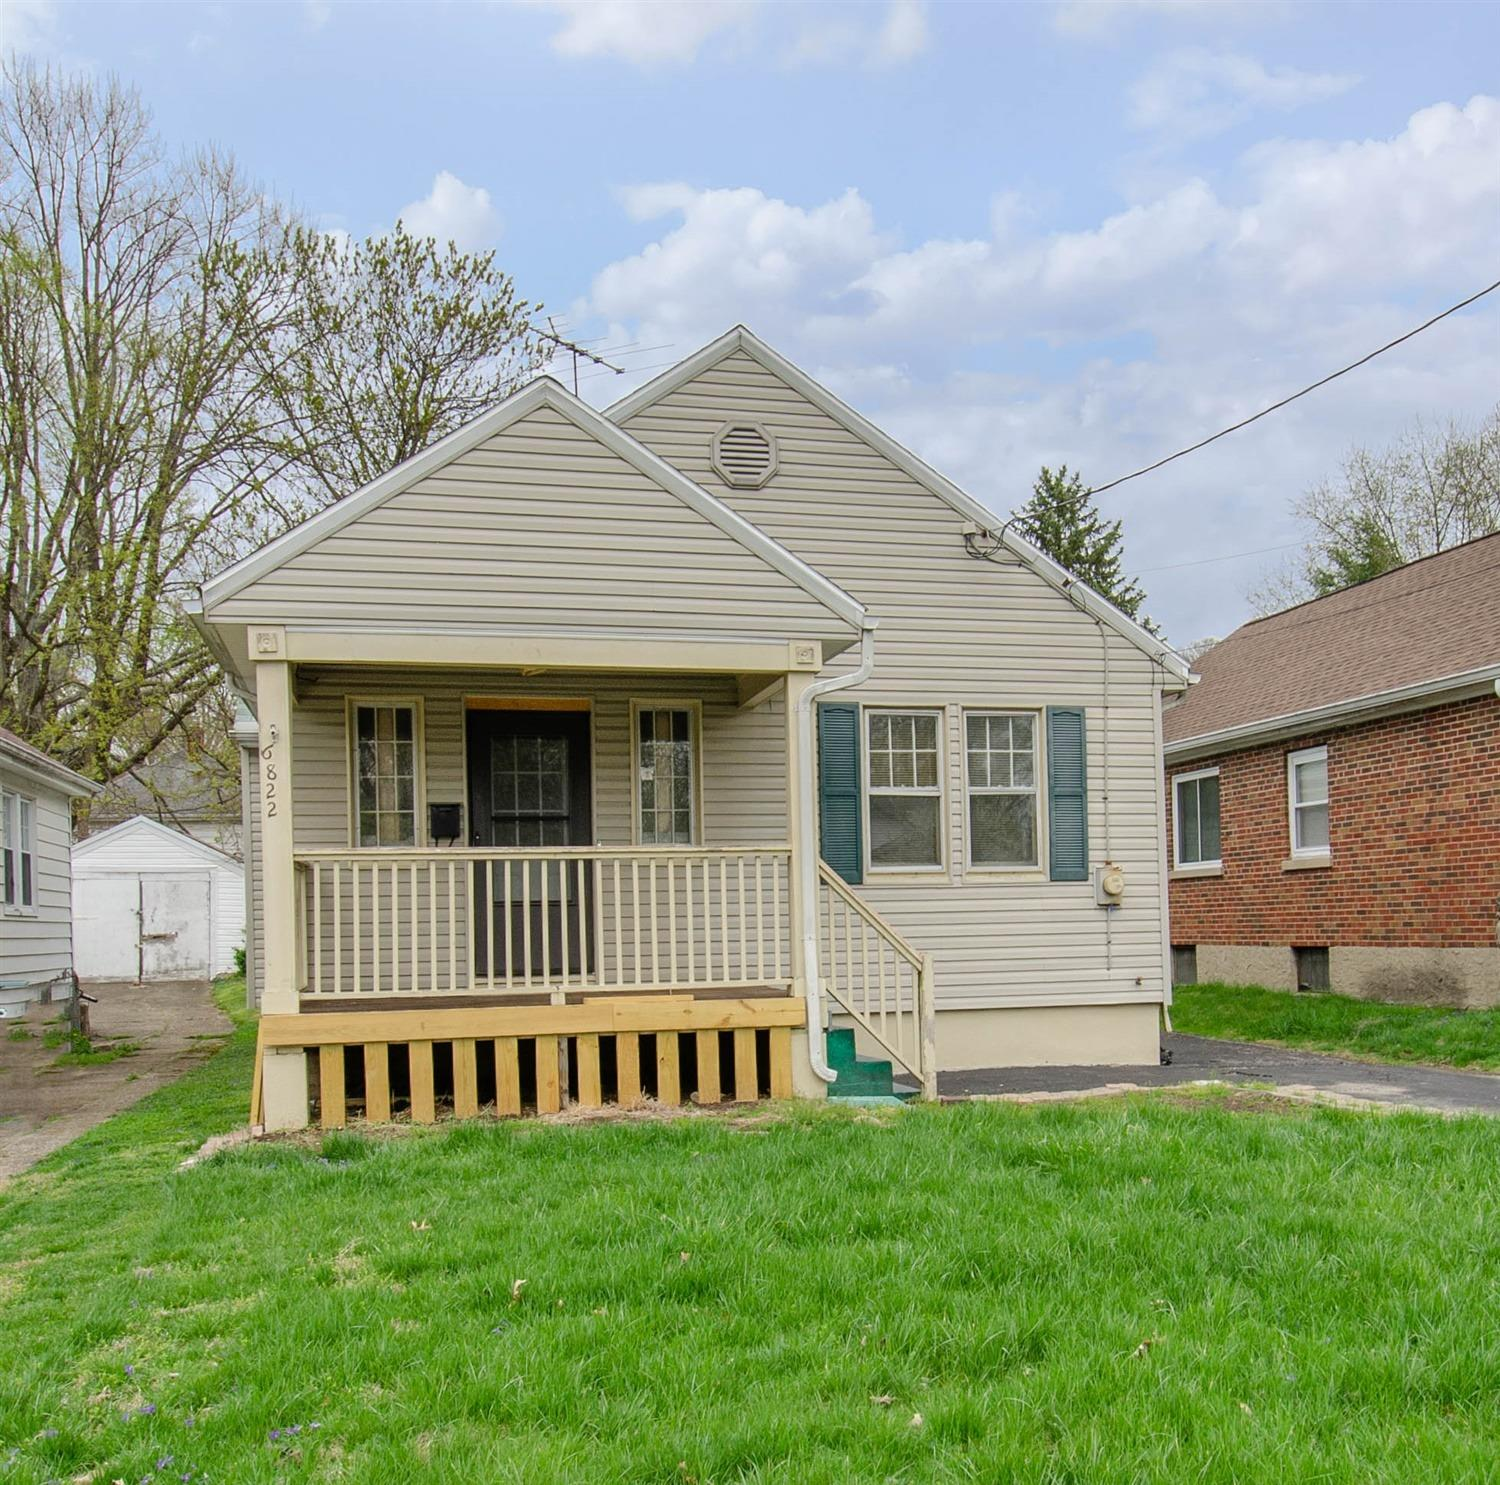 Photo 1 for 6822 Roe St Madisonville, OH 45227